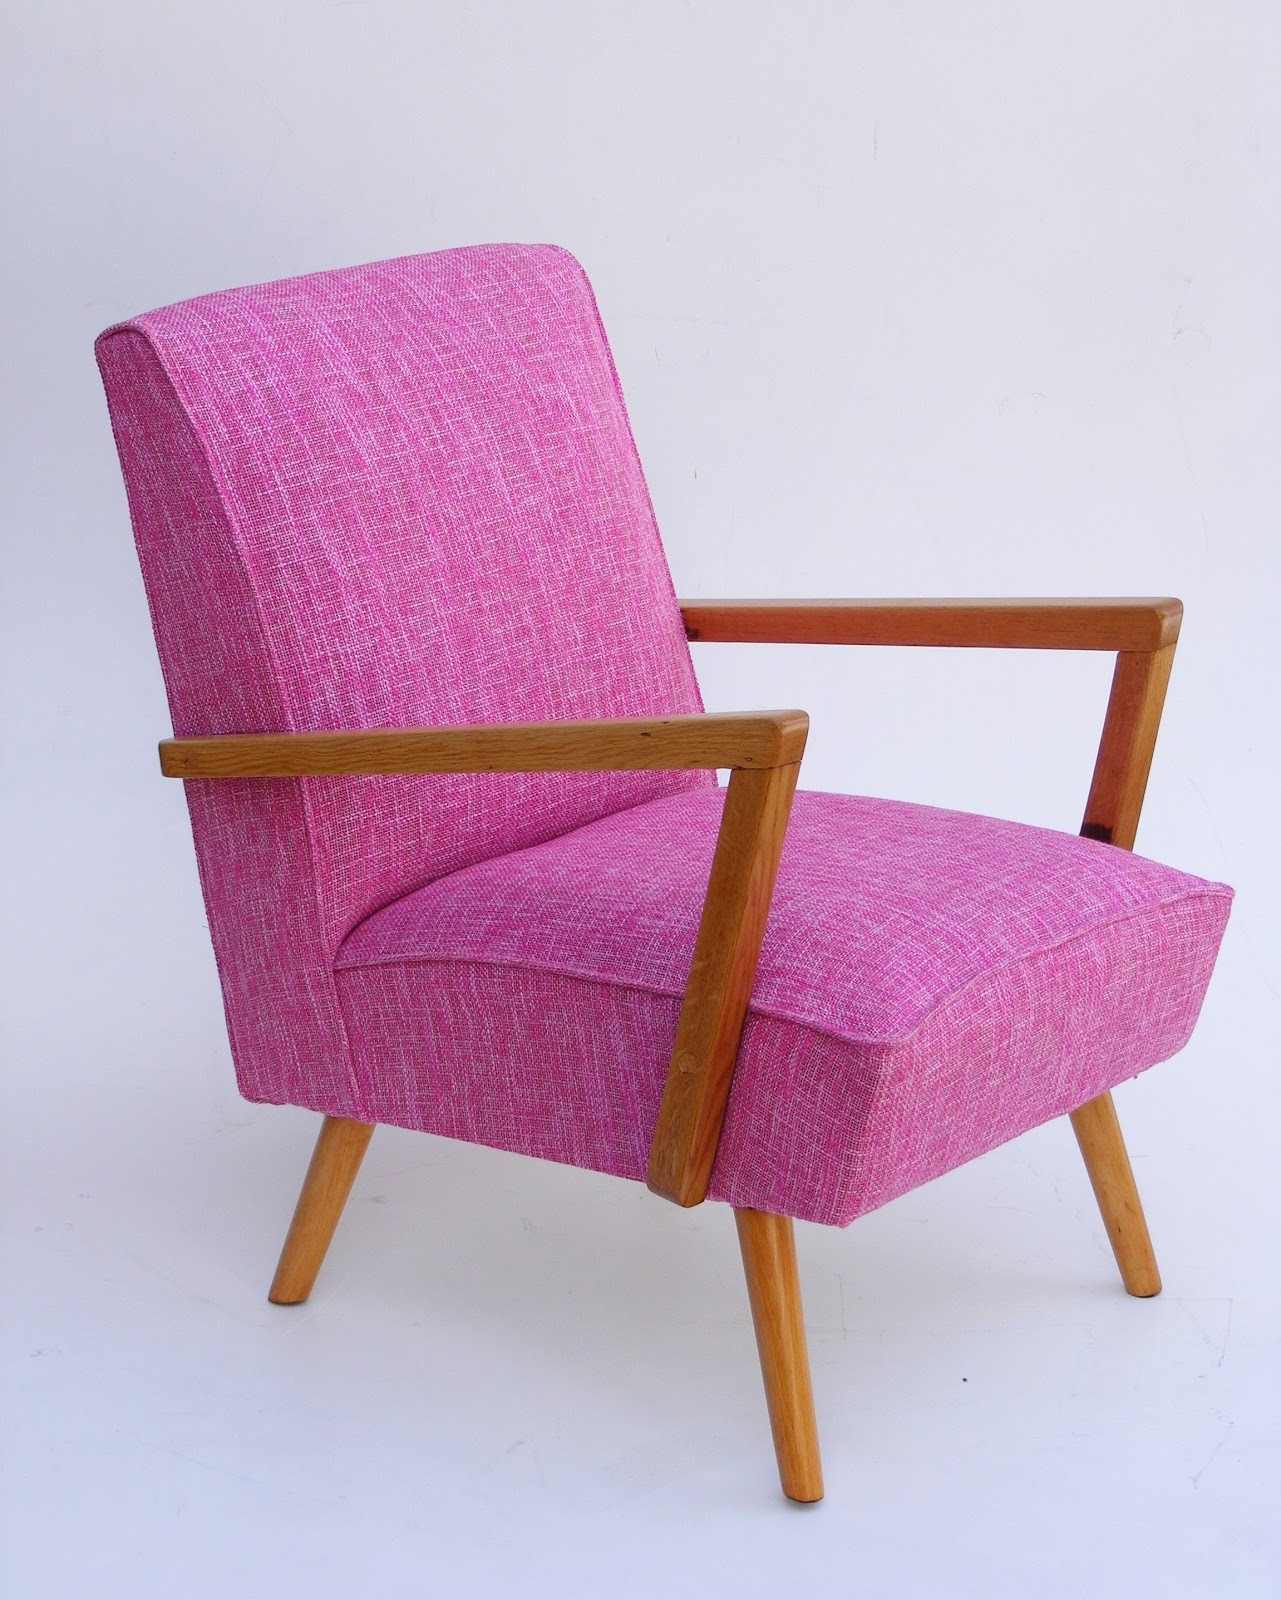 pink arm chair the mermaid book vamp furniture this week 39s new vintage stock at